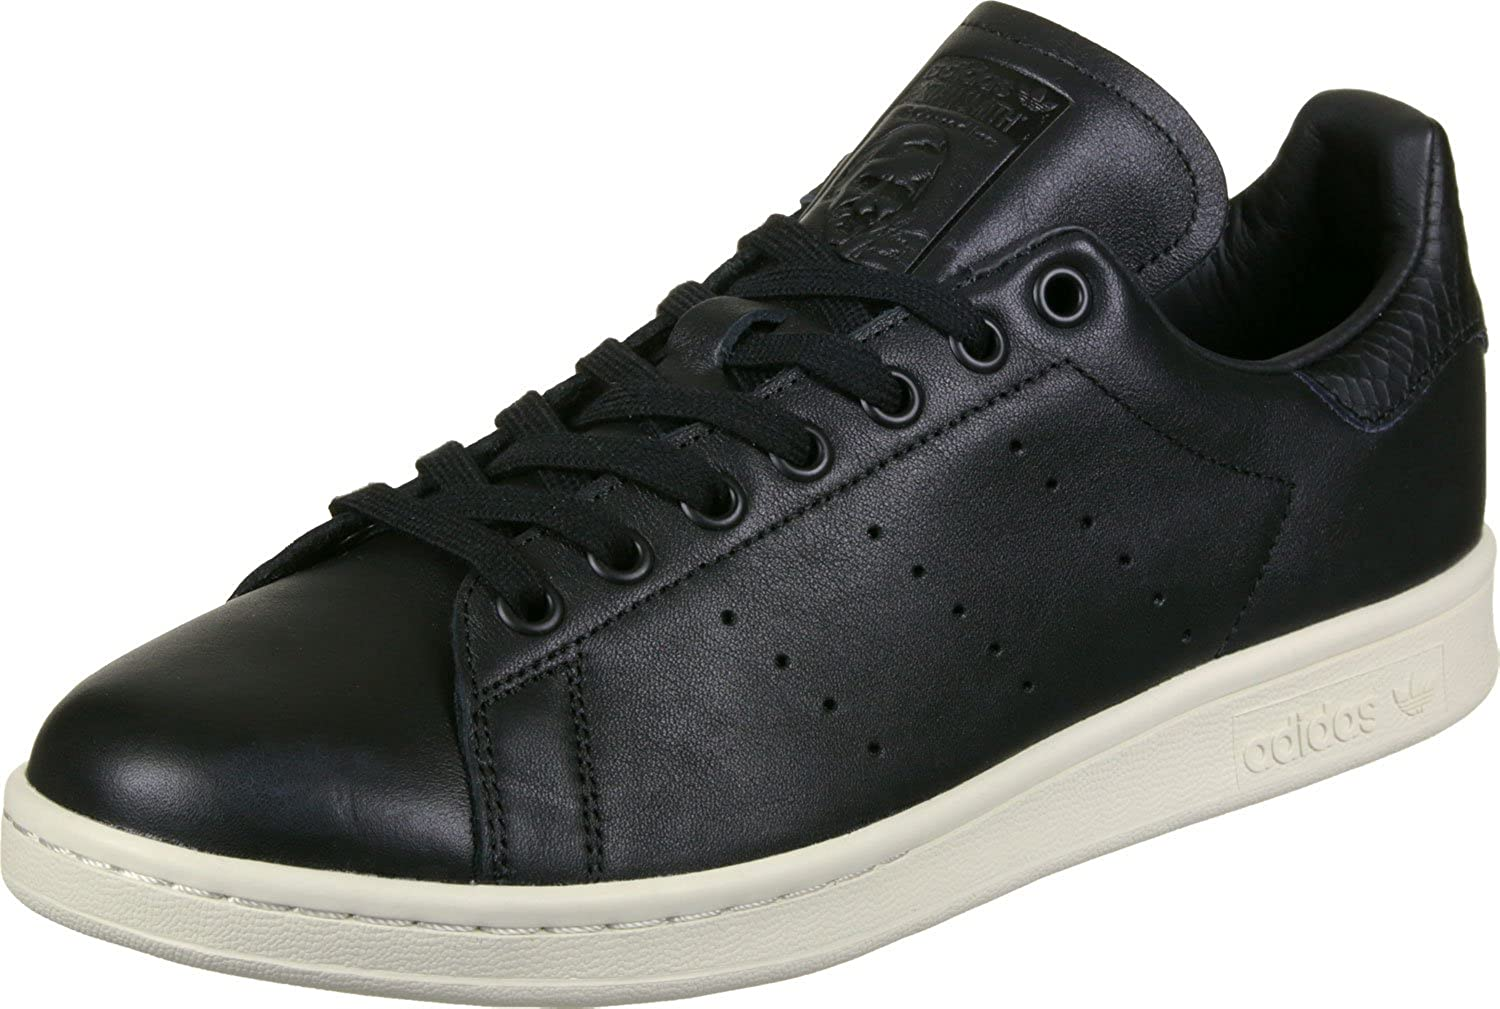 Brillar Categoría Canberra  adidas Men's Stan Smith Trainers: Amazon.co.uk: Shoes & Bags